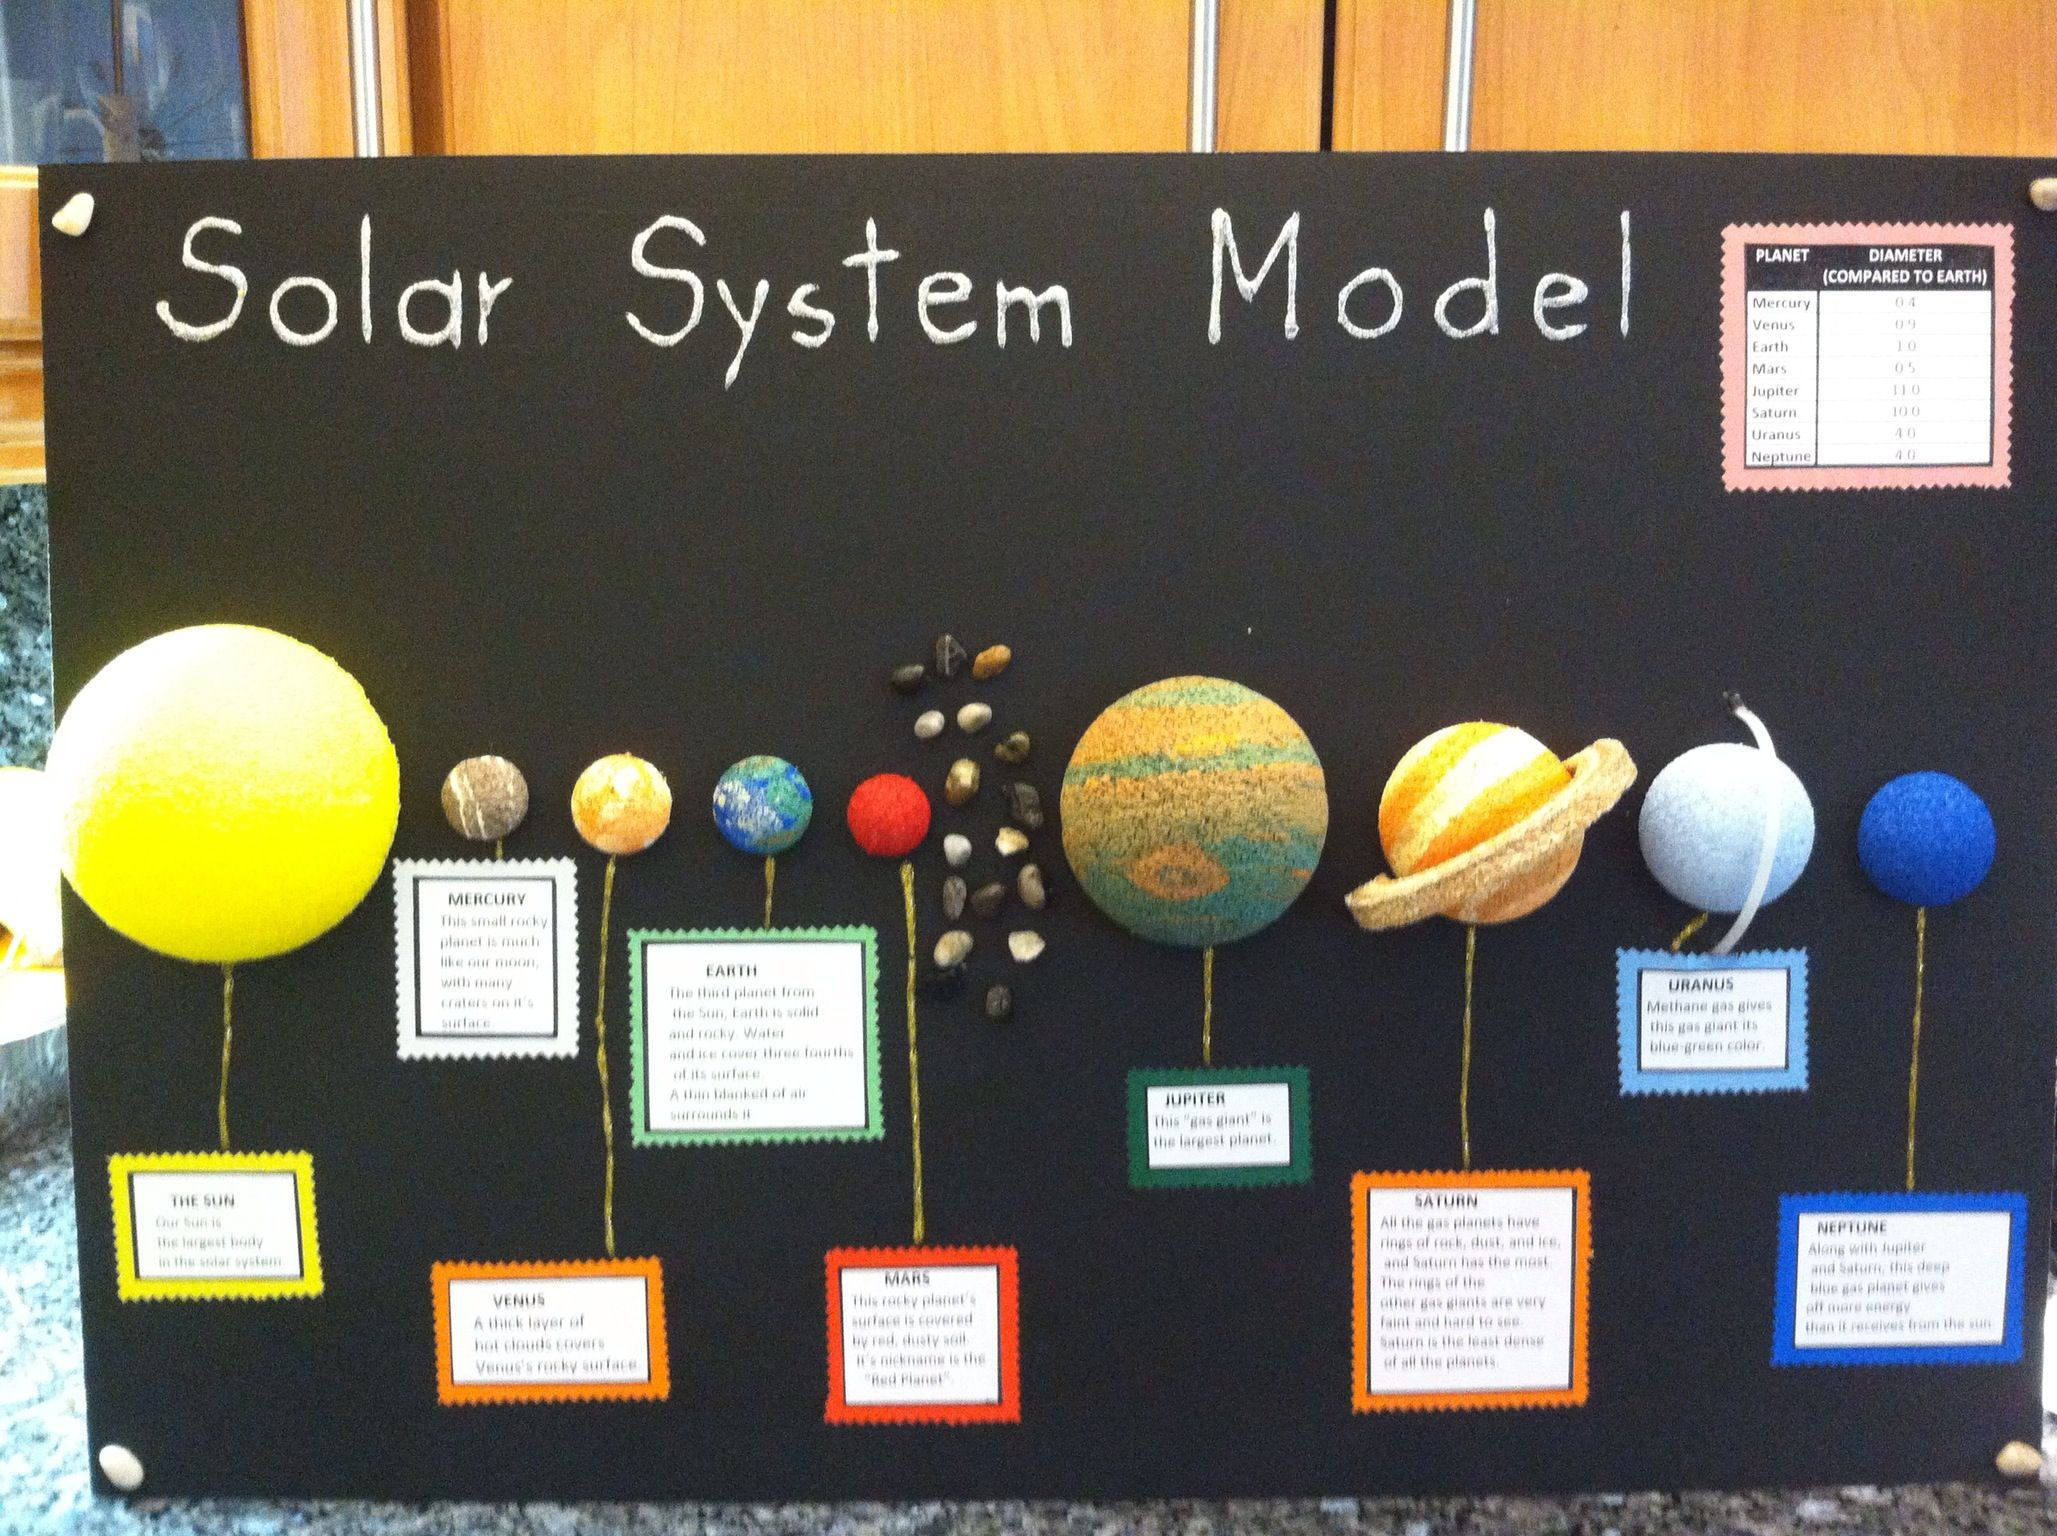 3d solar system model ideas - photo #7